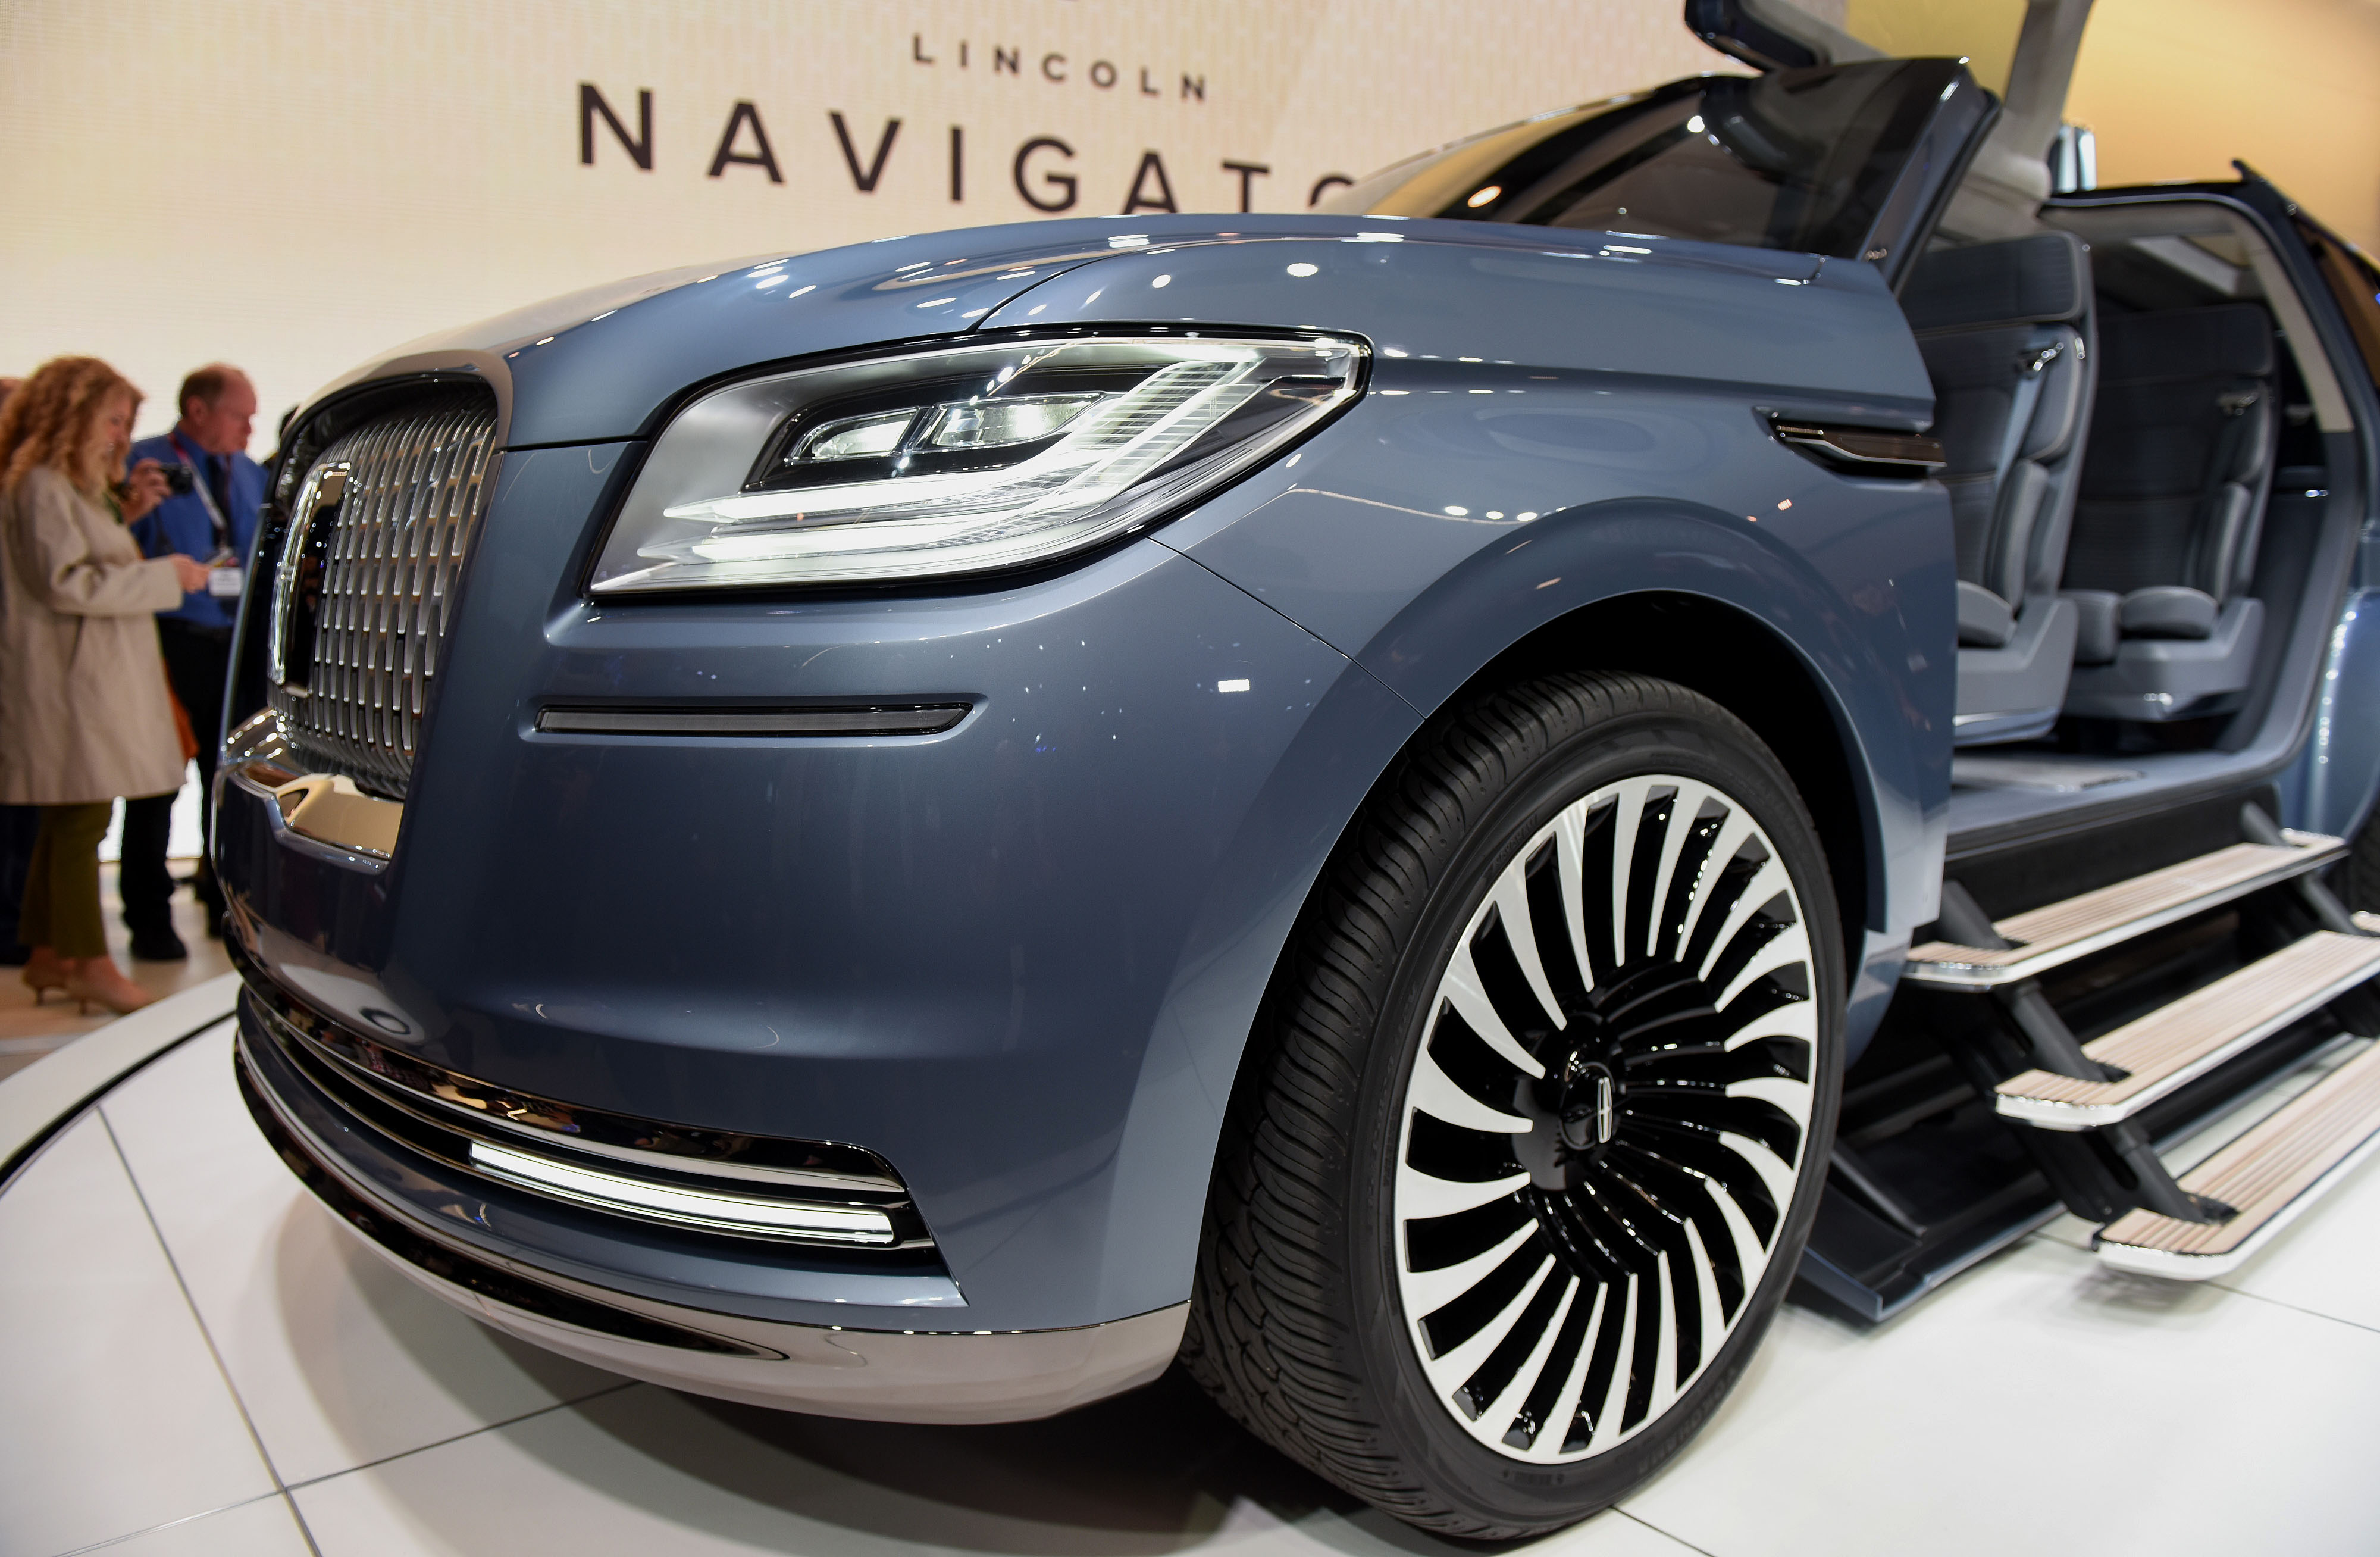 The Ford Motor Co. Lincoln Navigator concept sports utility vehicle (SUV) is displayed during the 2016 New York International Auto Show on March 23, 2016.